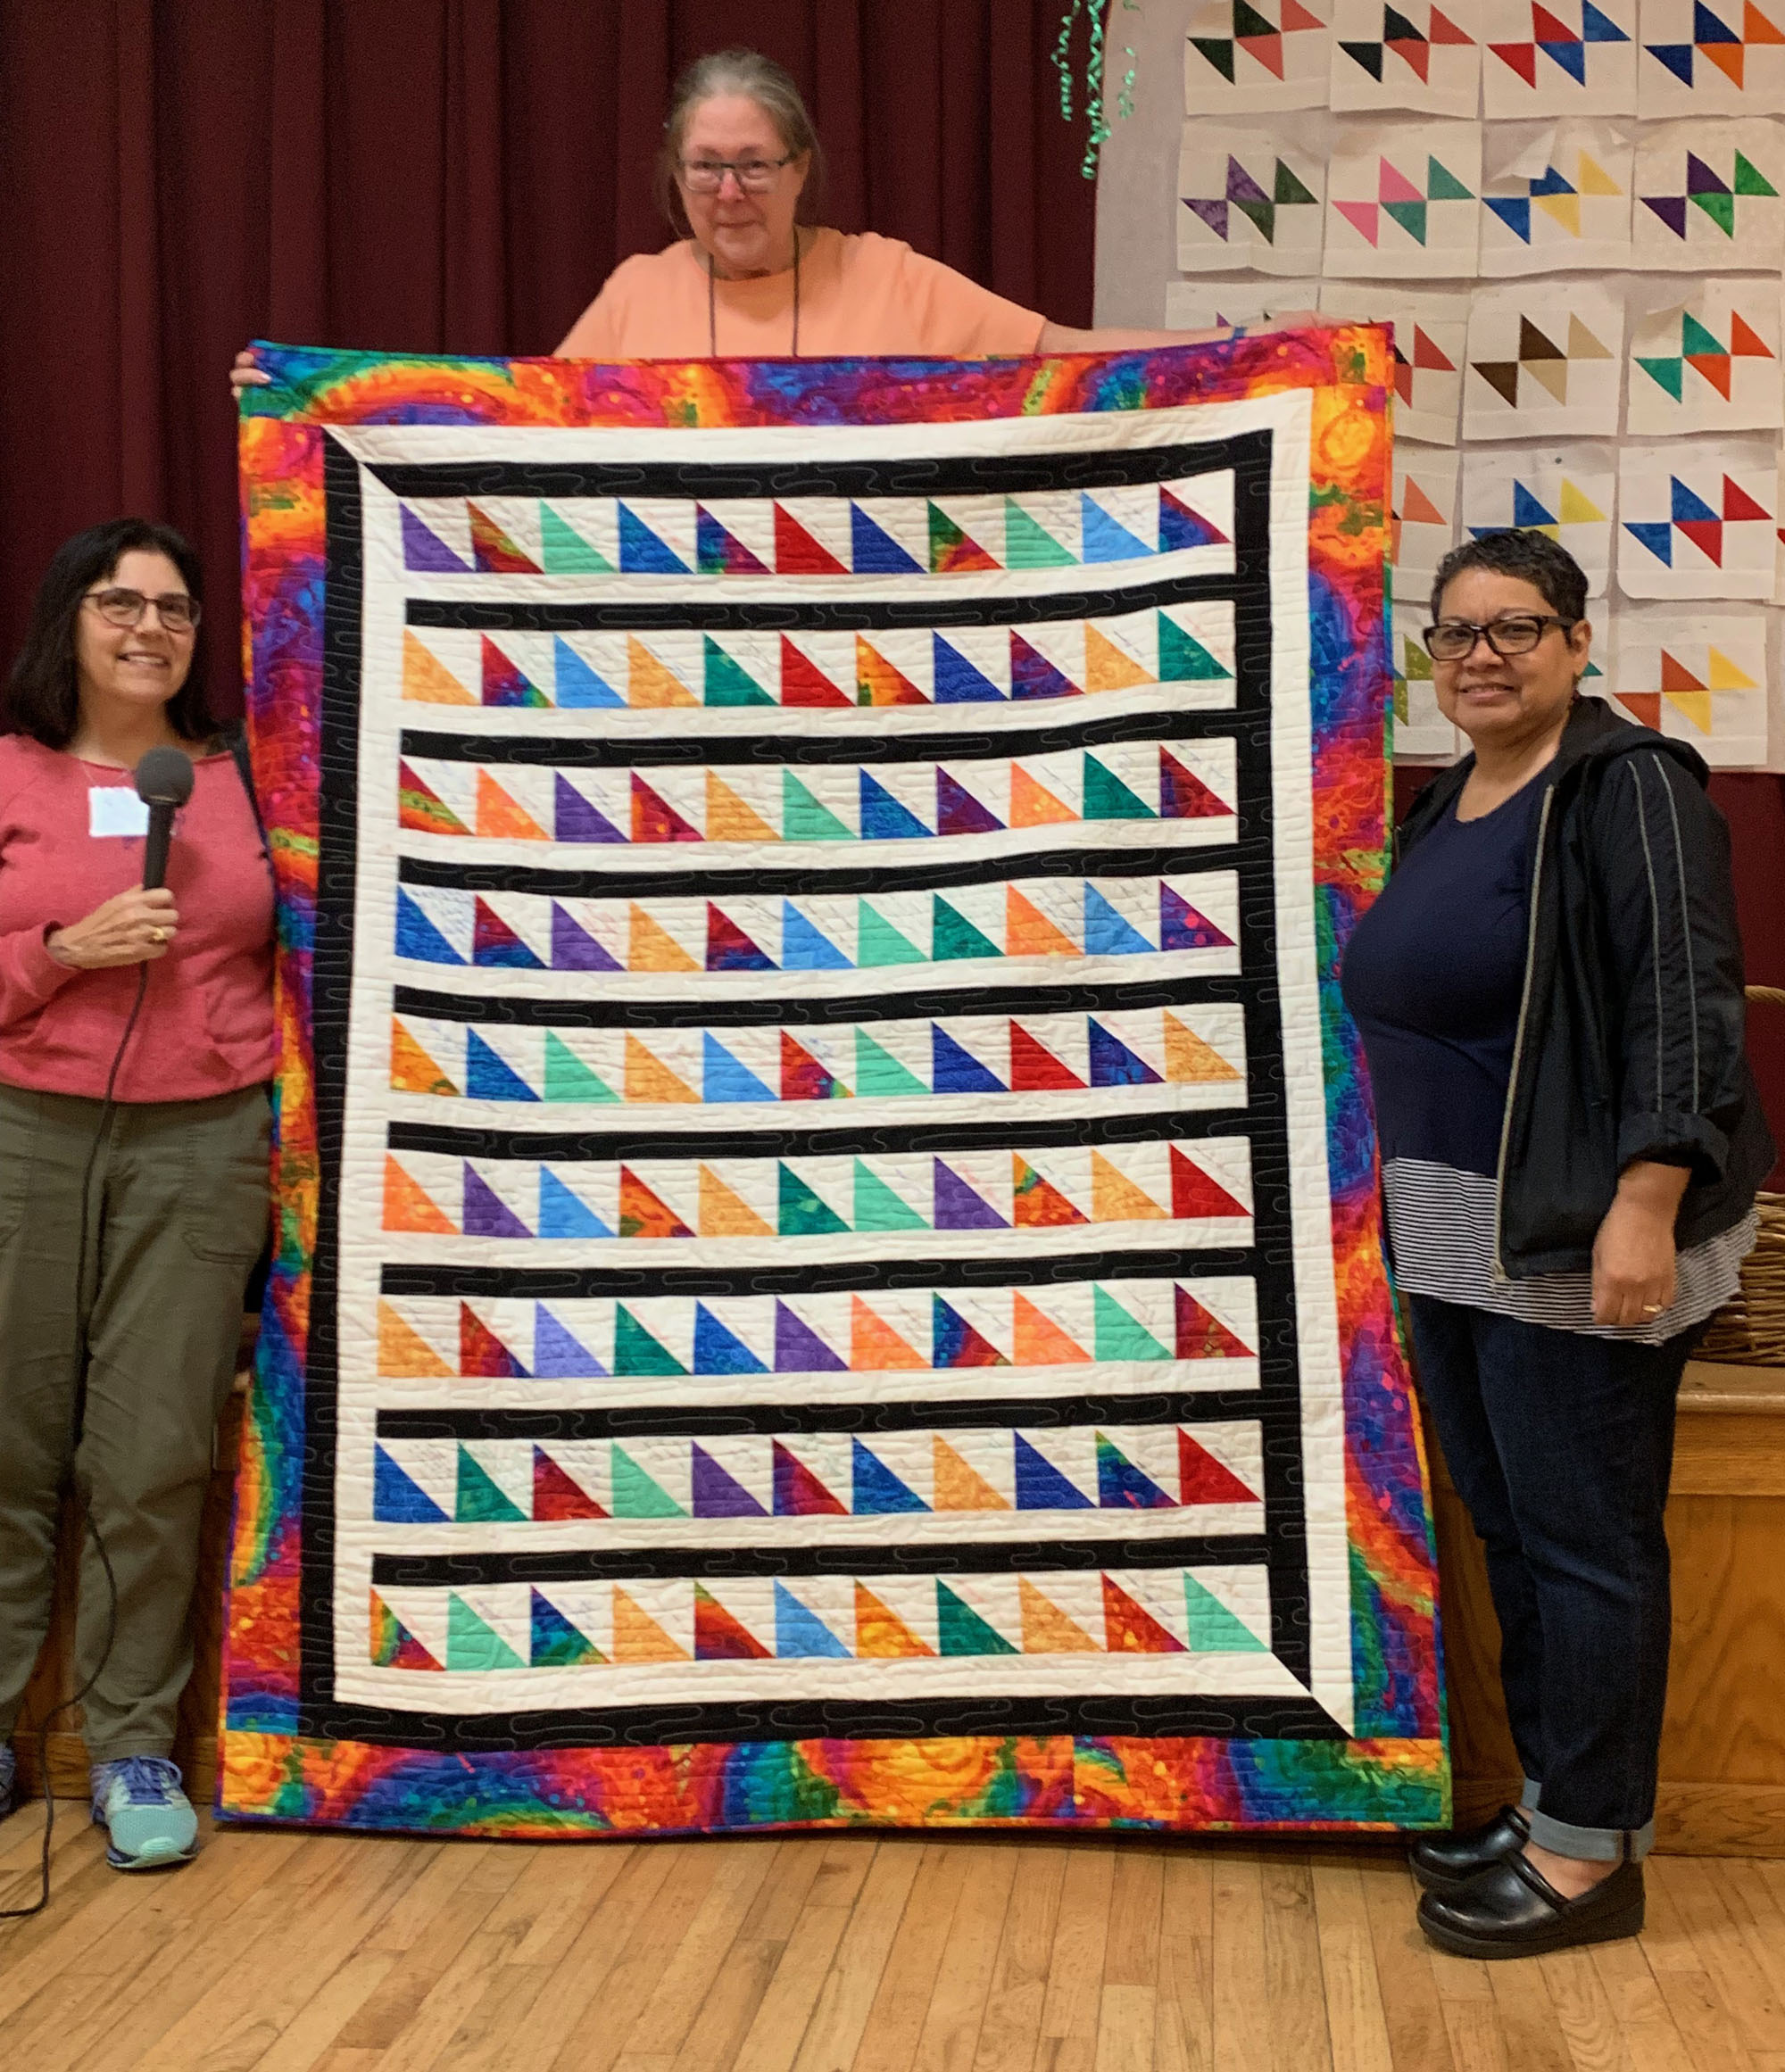 Friendship quilt presented to Sylvia Hernandez by members of the Guild.